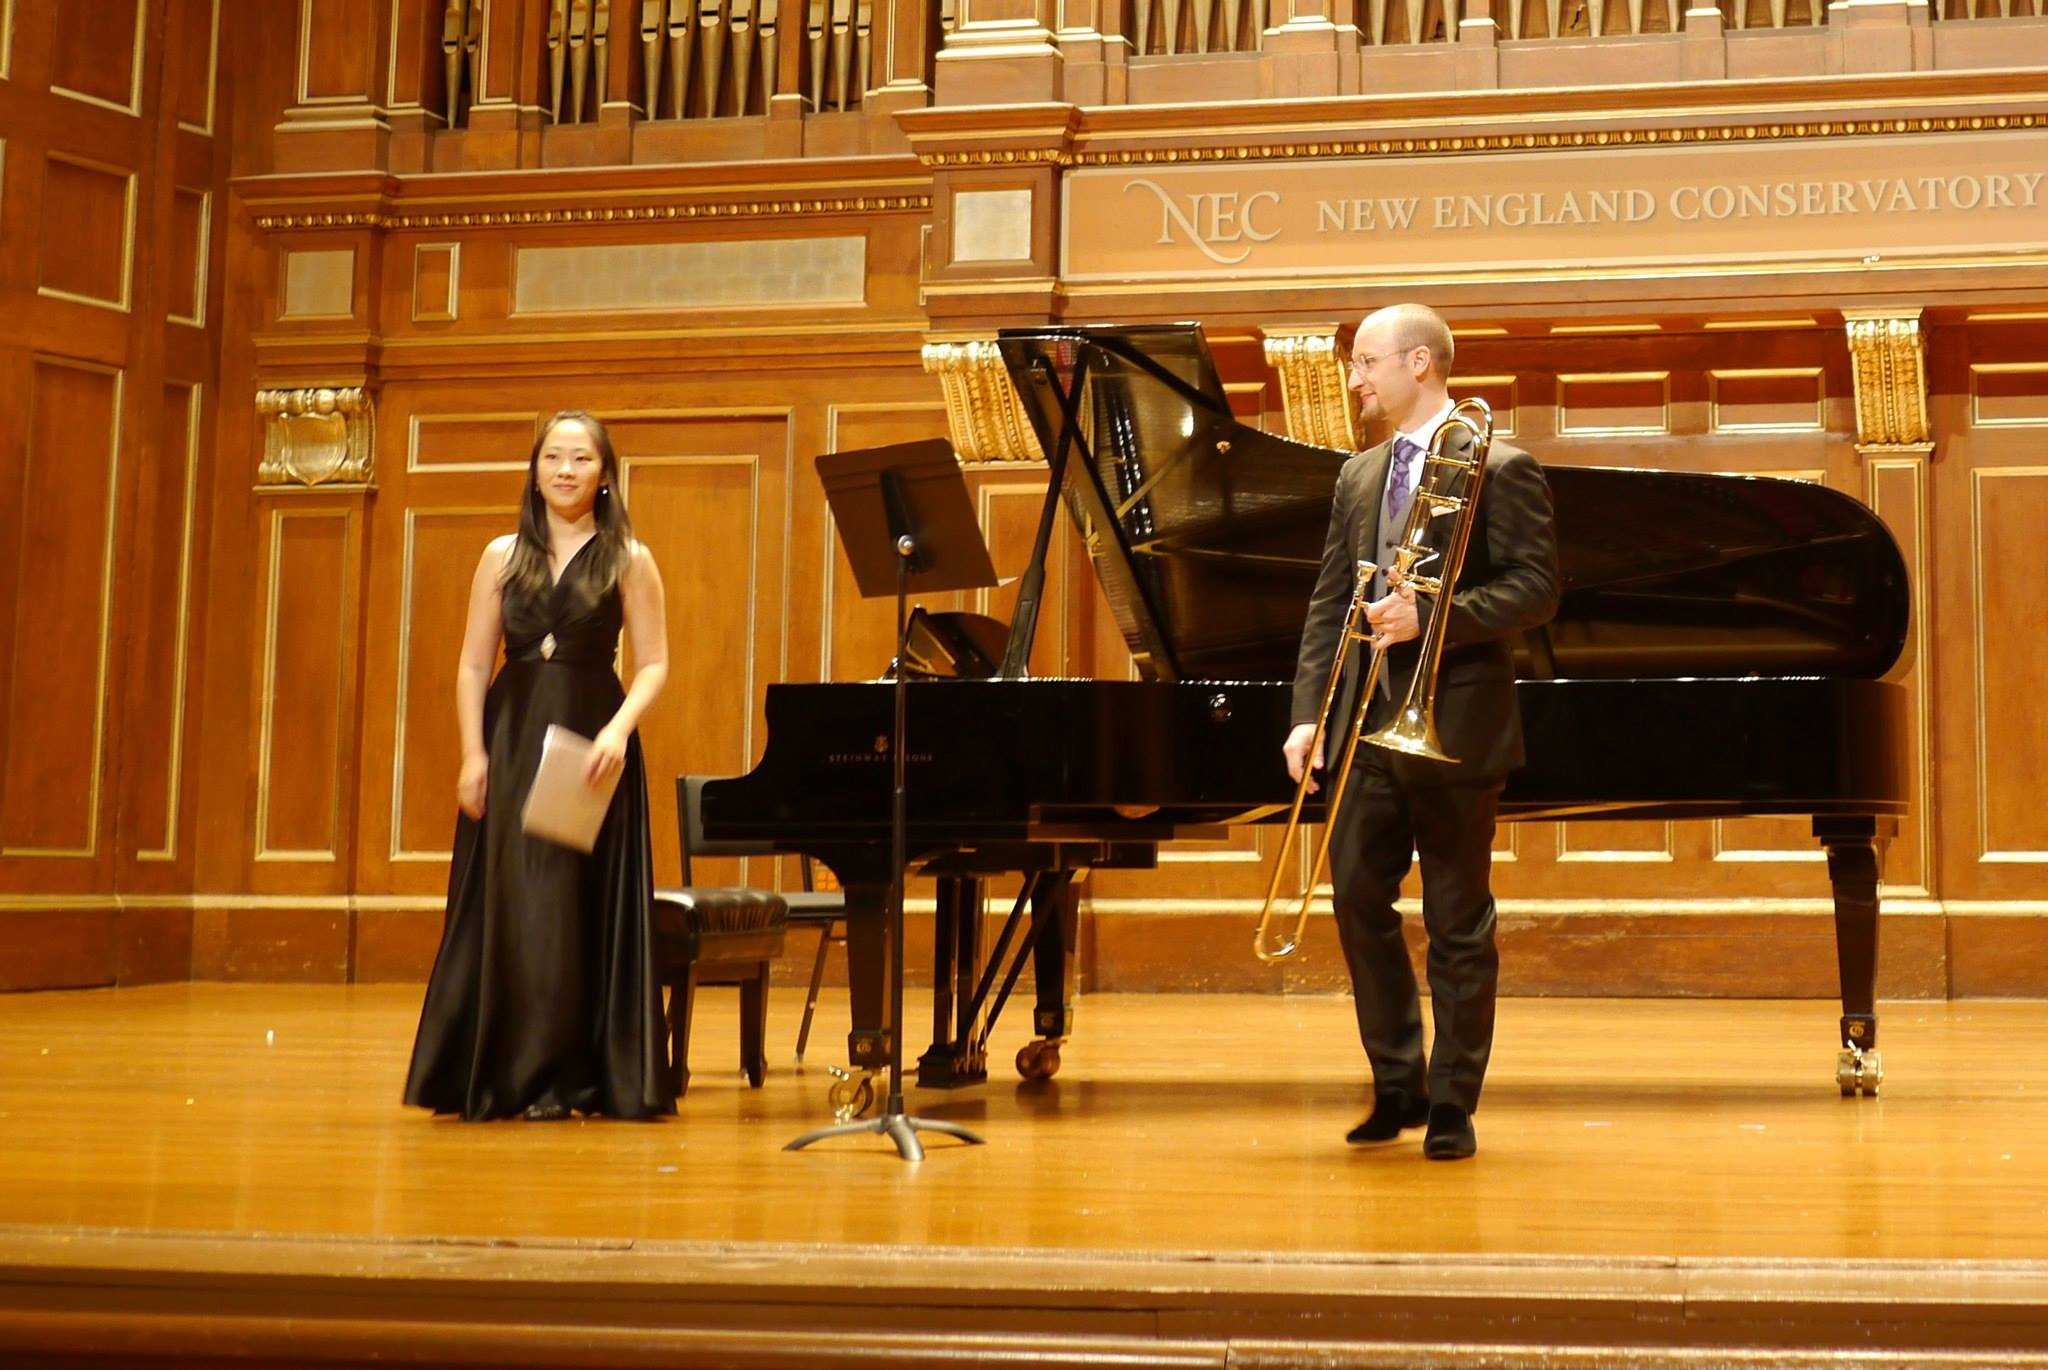 Recital with Toby Oft at Jordan Hall of New England Conservatory, 2013